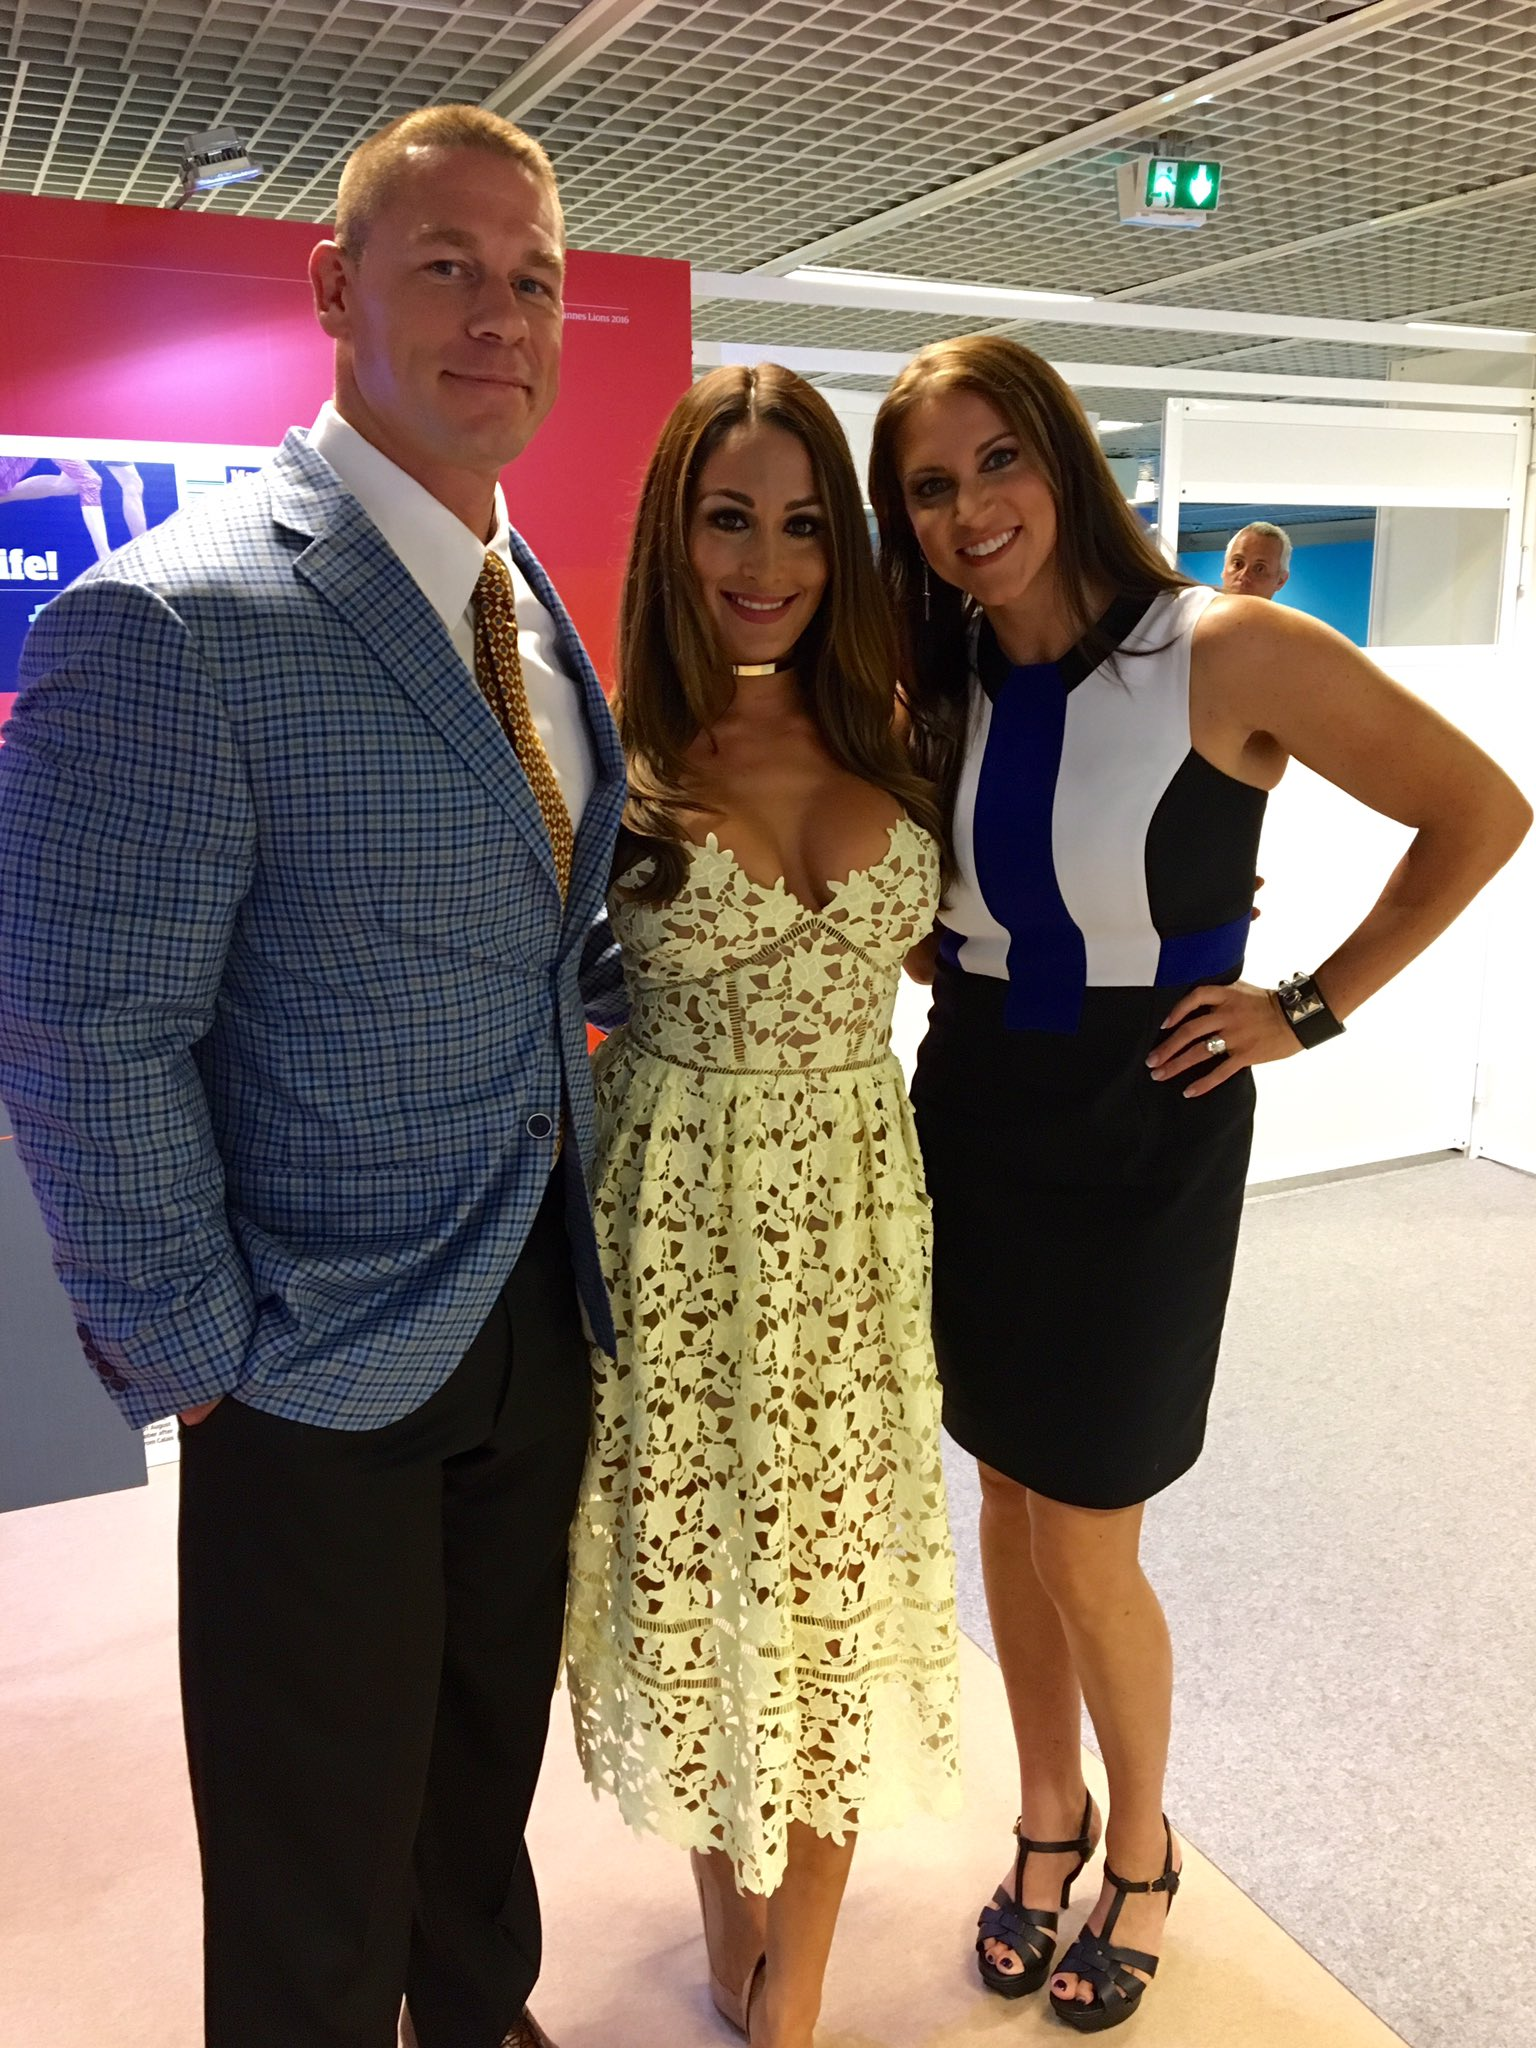 Stephanie Mcmahon On Twitter Excited To Be Speaking On